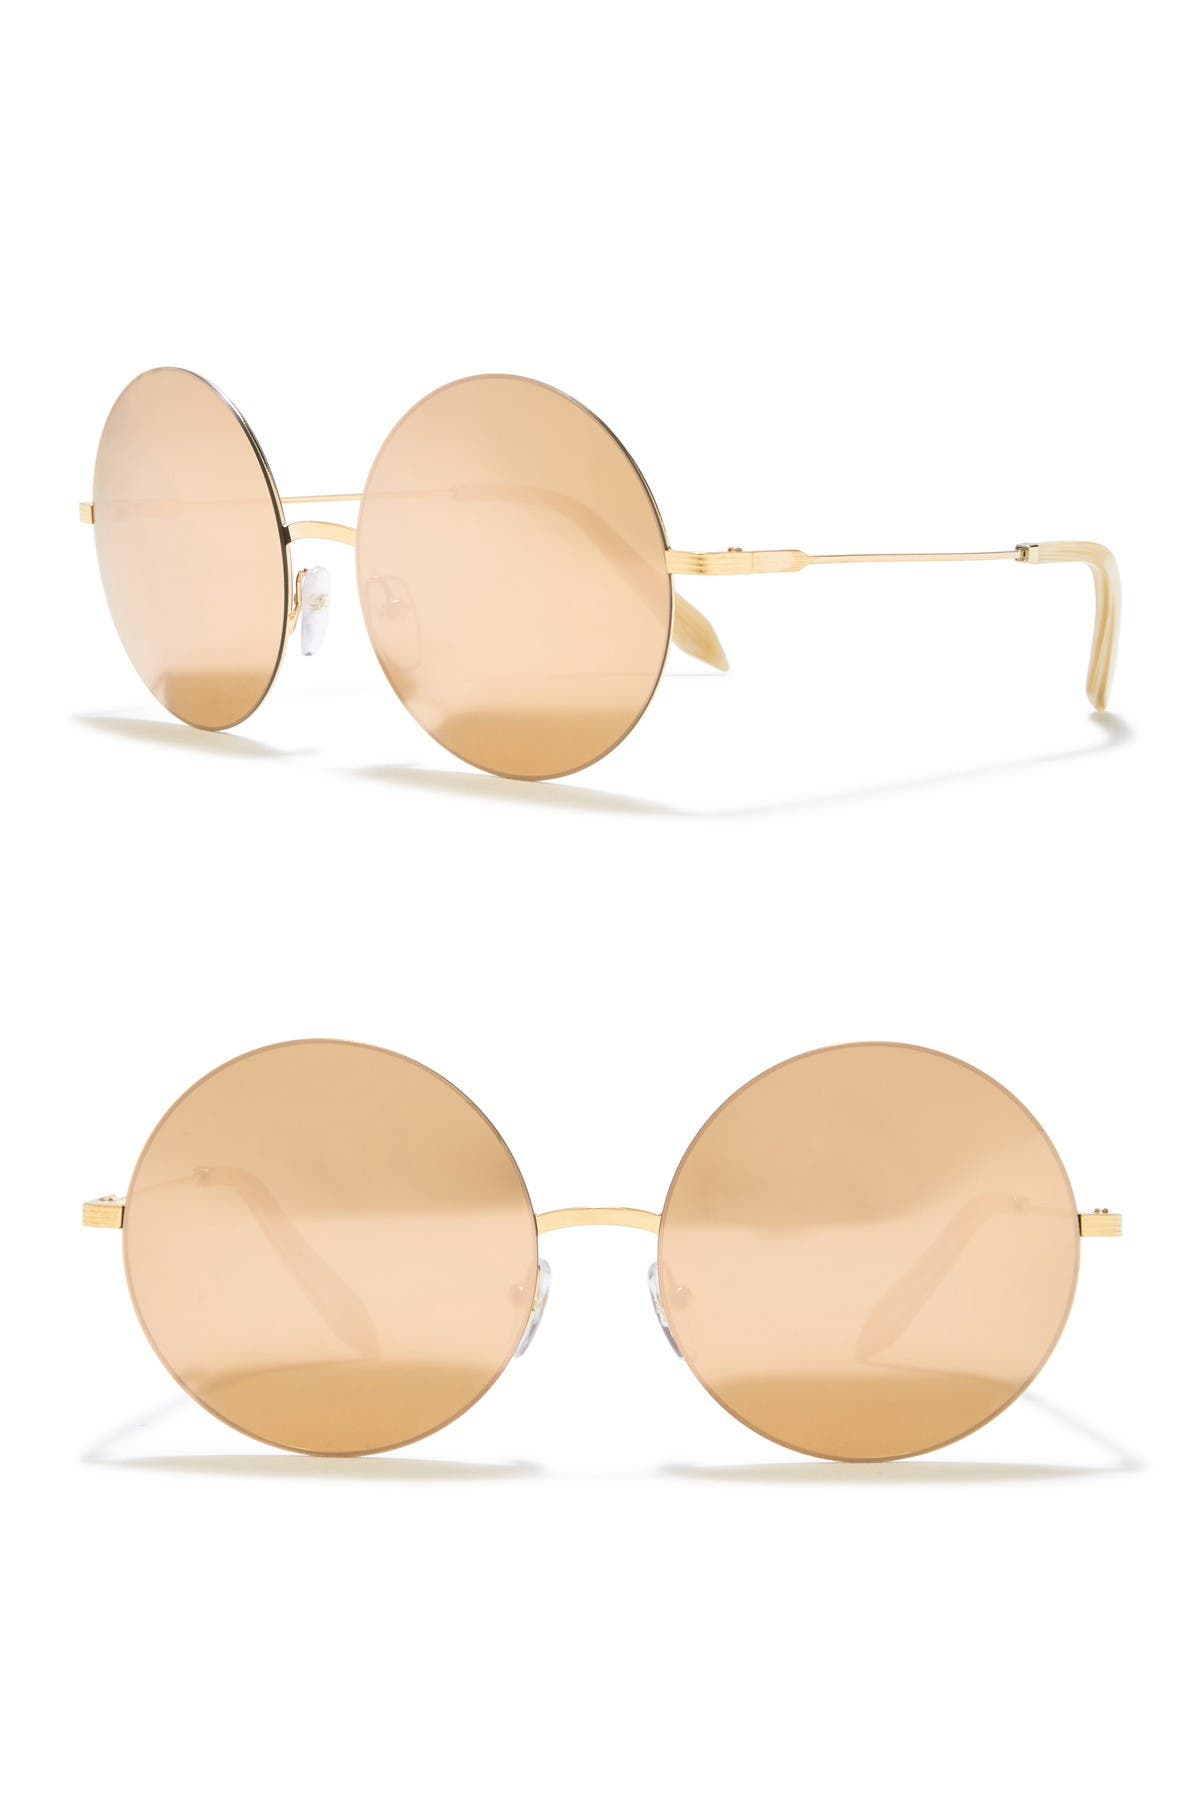 Image of Victoria Beckham 58mm Round Sunglasses